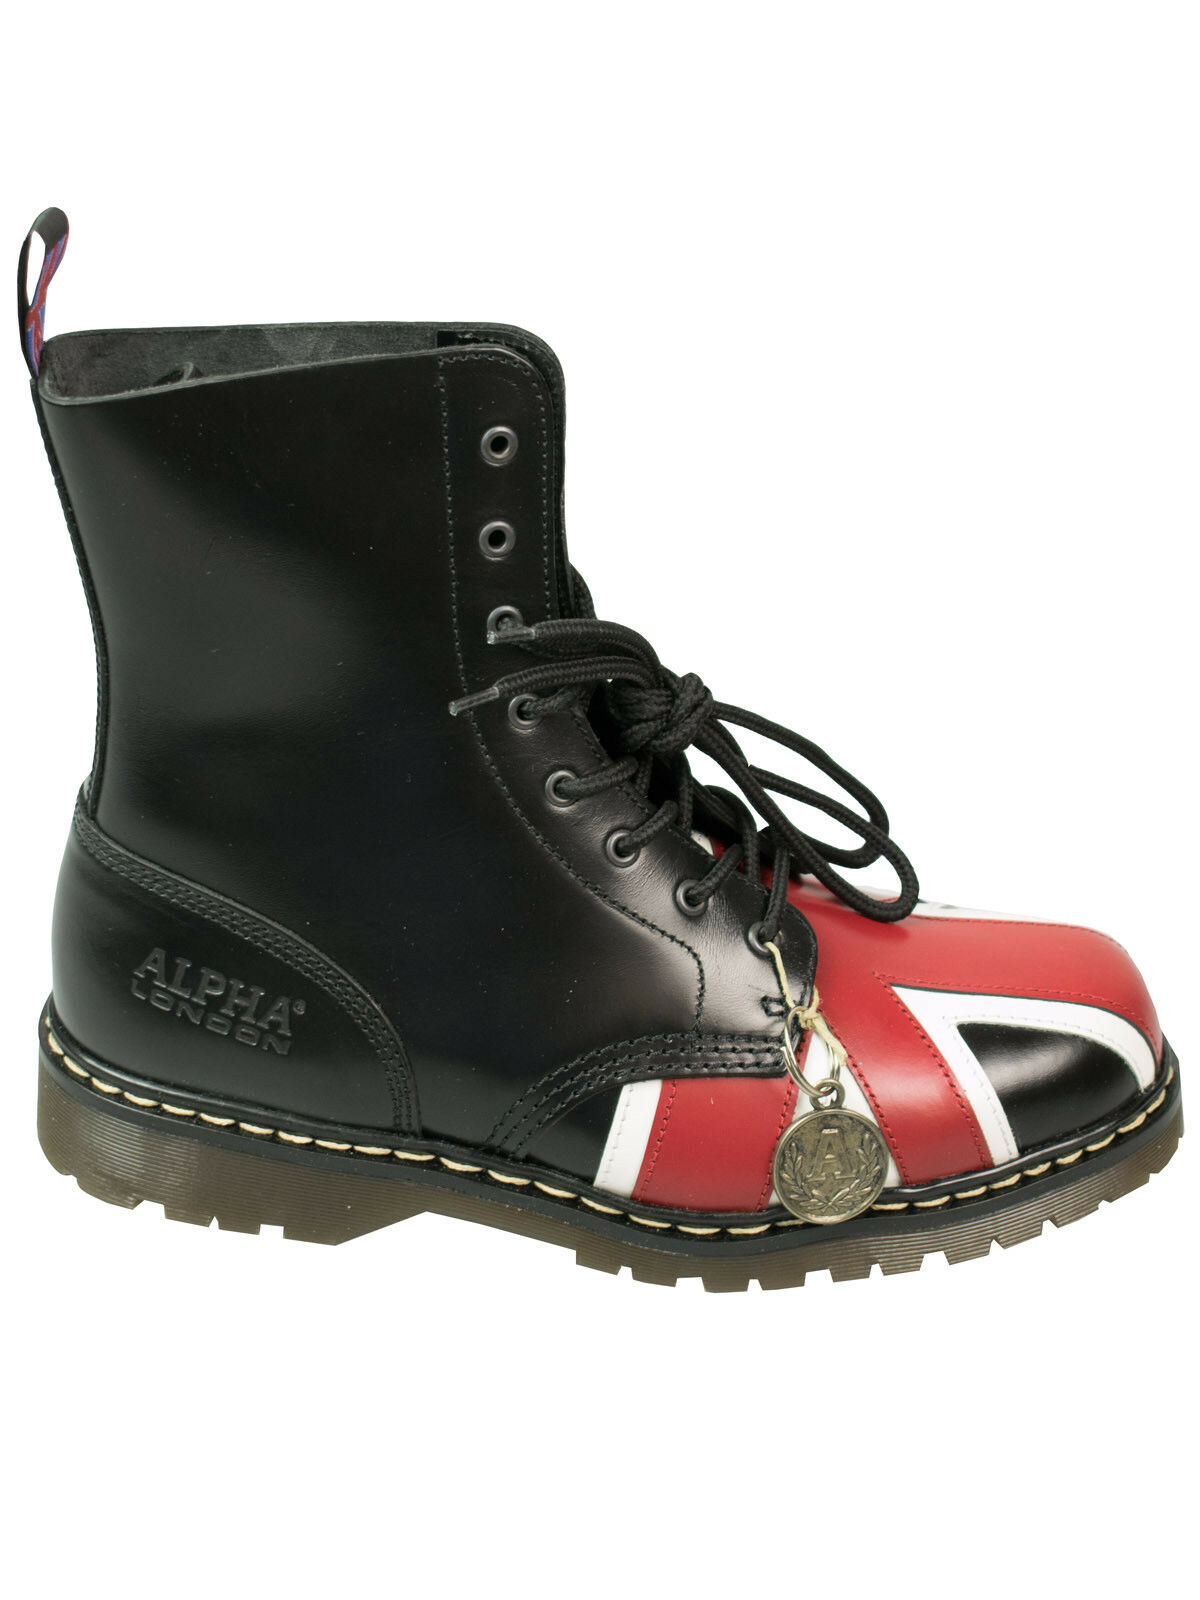 Alpha London 8-Loch Stiefel Stiefel Union Jack UK Flag Schwarz England Fahne  5004